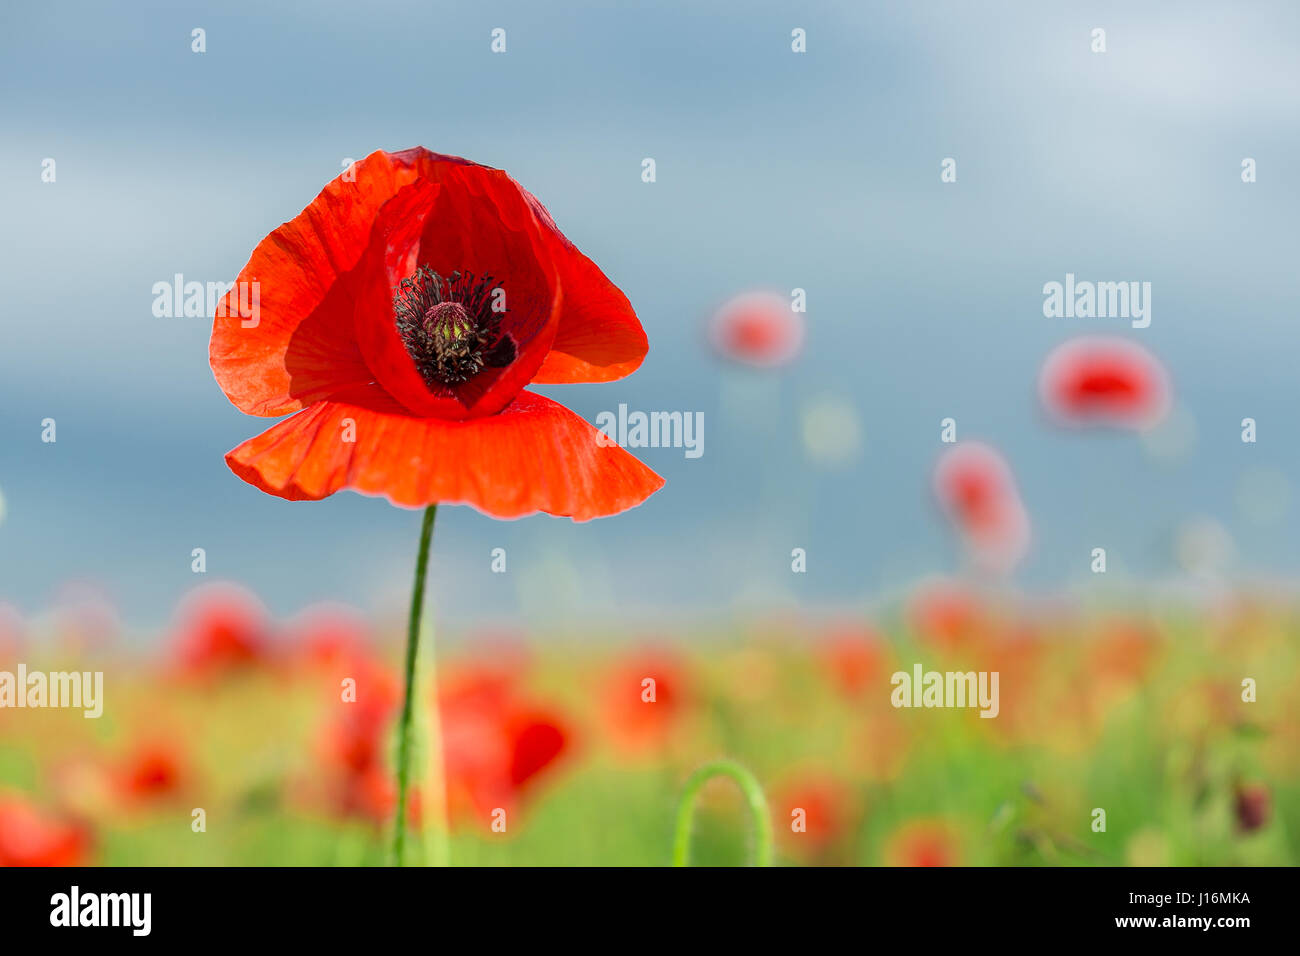 Poppy industrial farming, nature, agriculture concept - close-up on flowering poppy in the summer field, a sunny - Stock Image